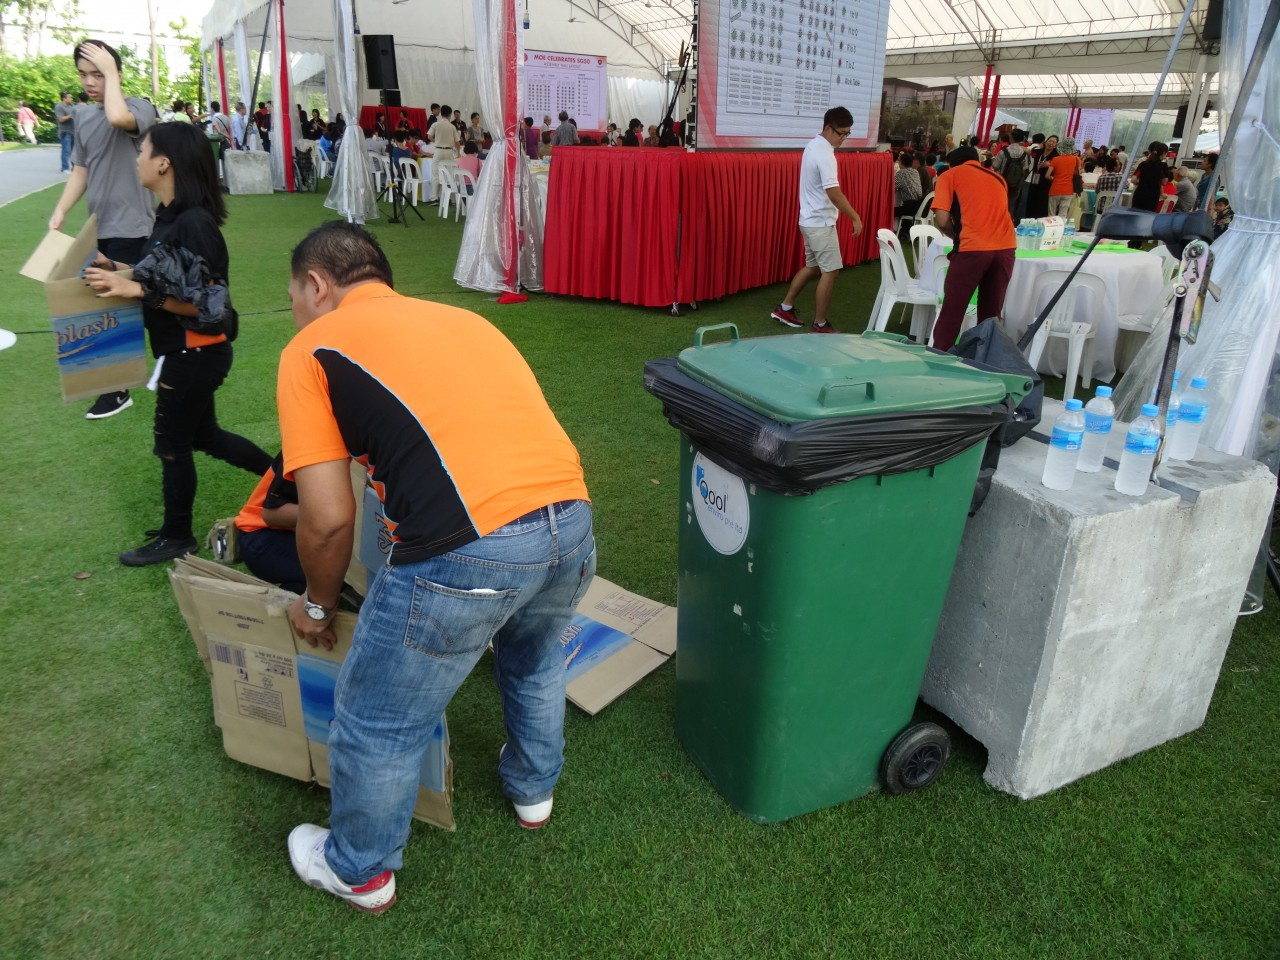 qool enviro portable toilet in moe celebrate sg50 13